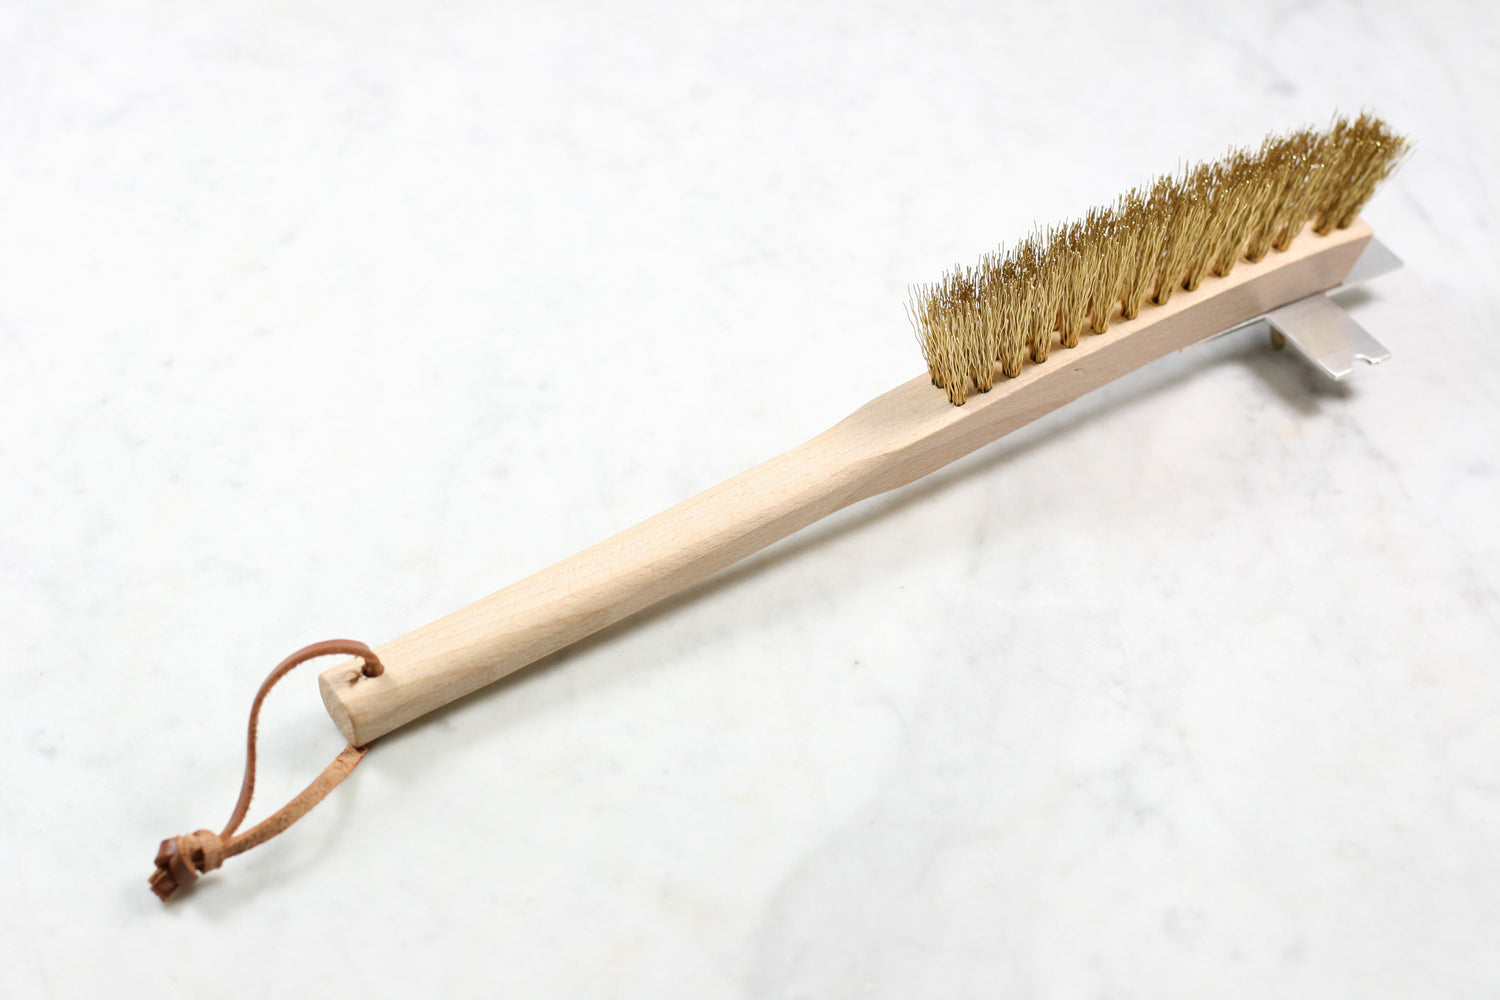 Burstenhaus Redecker BBQ grill brush with long wooden handle.